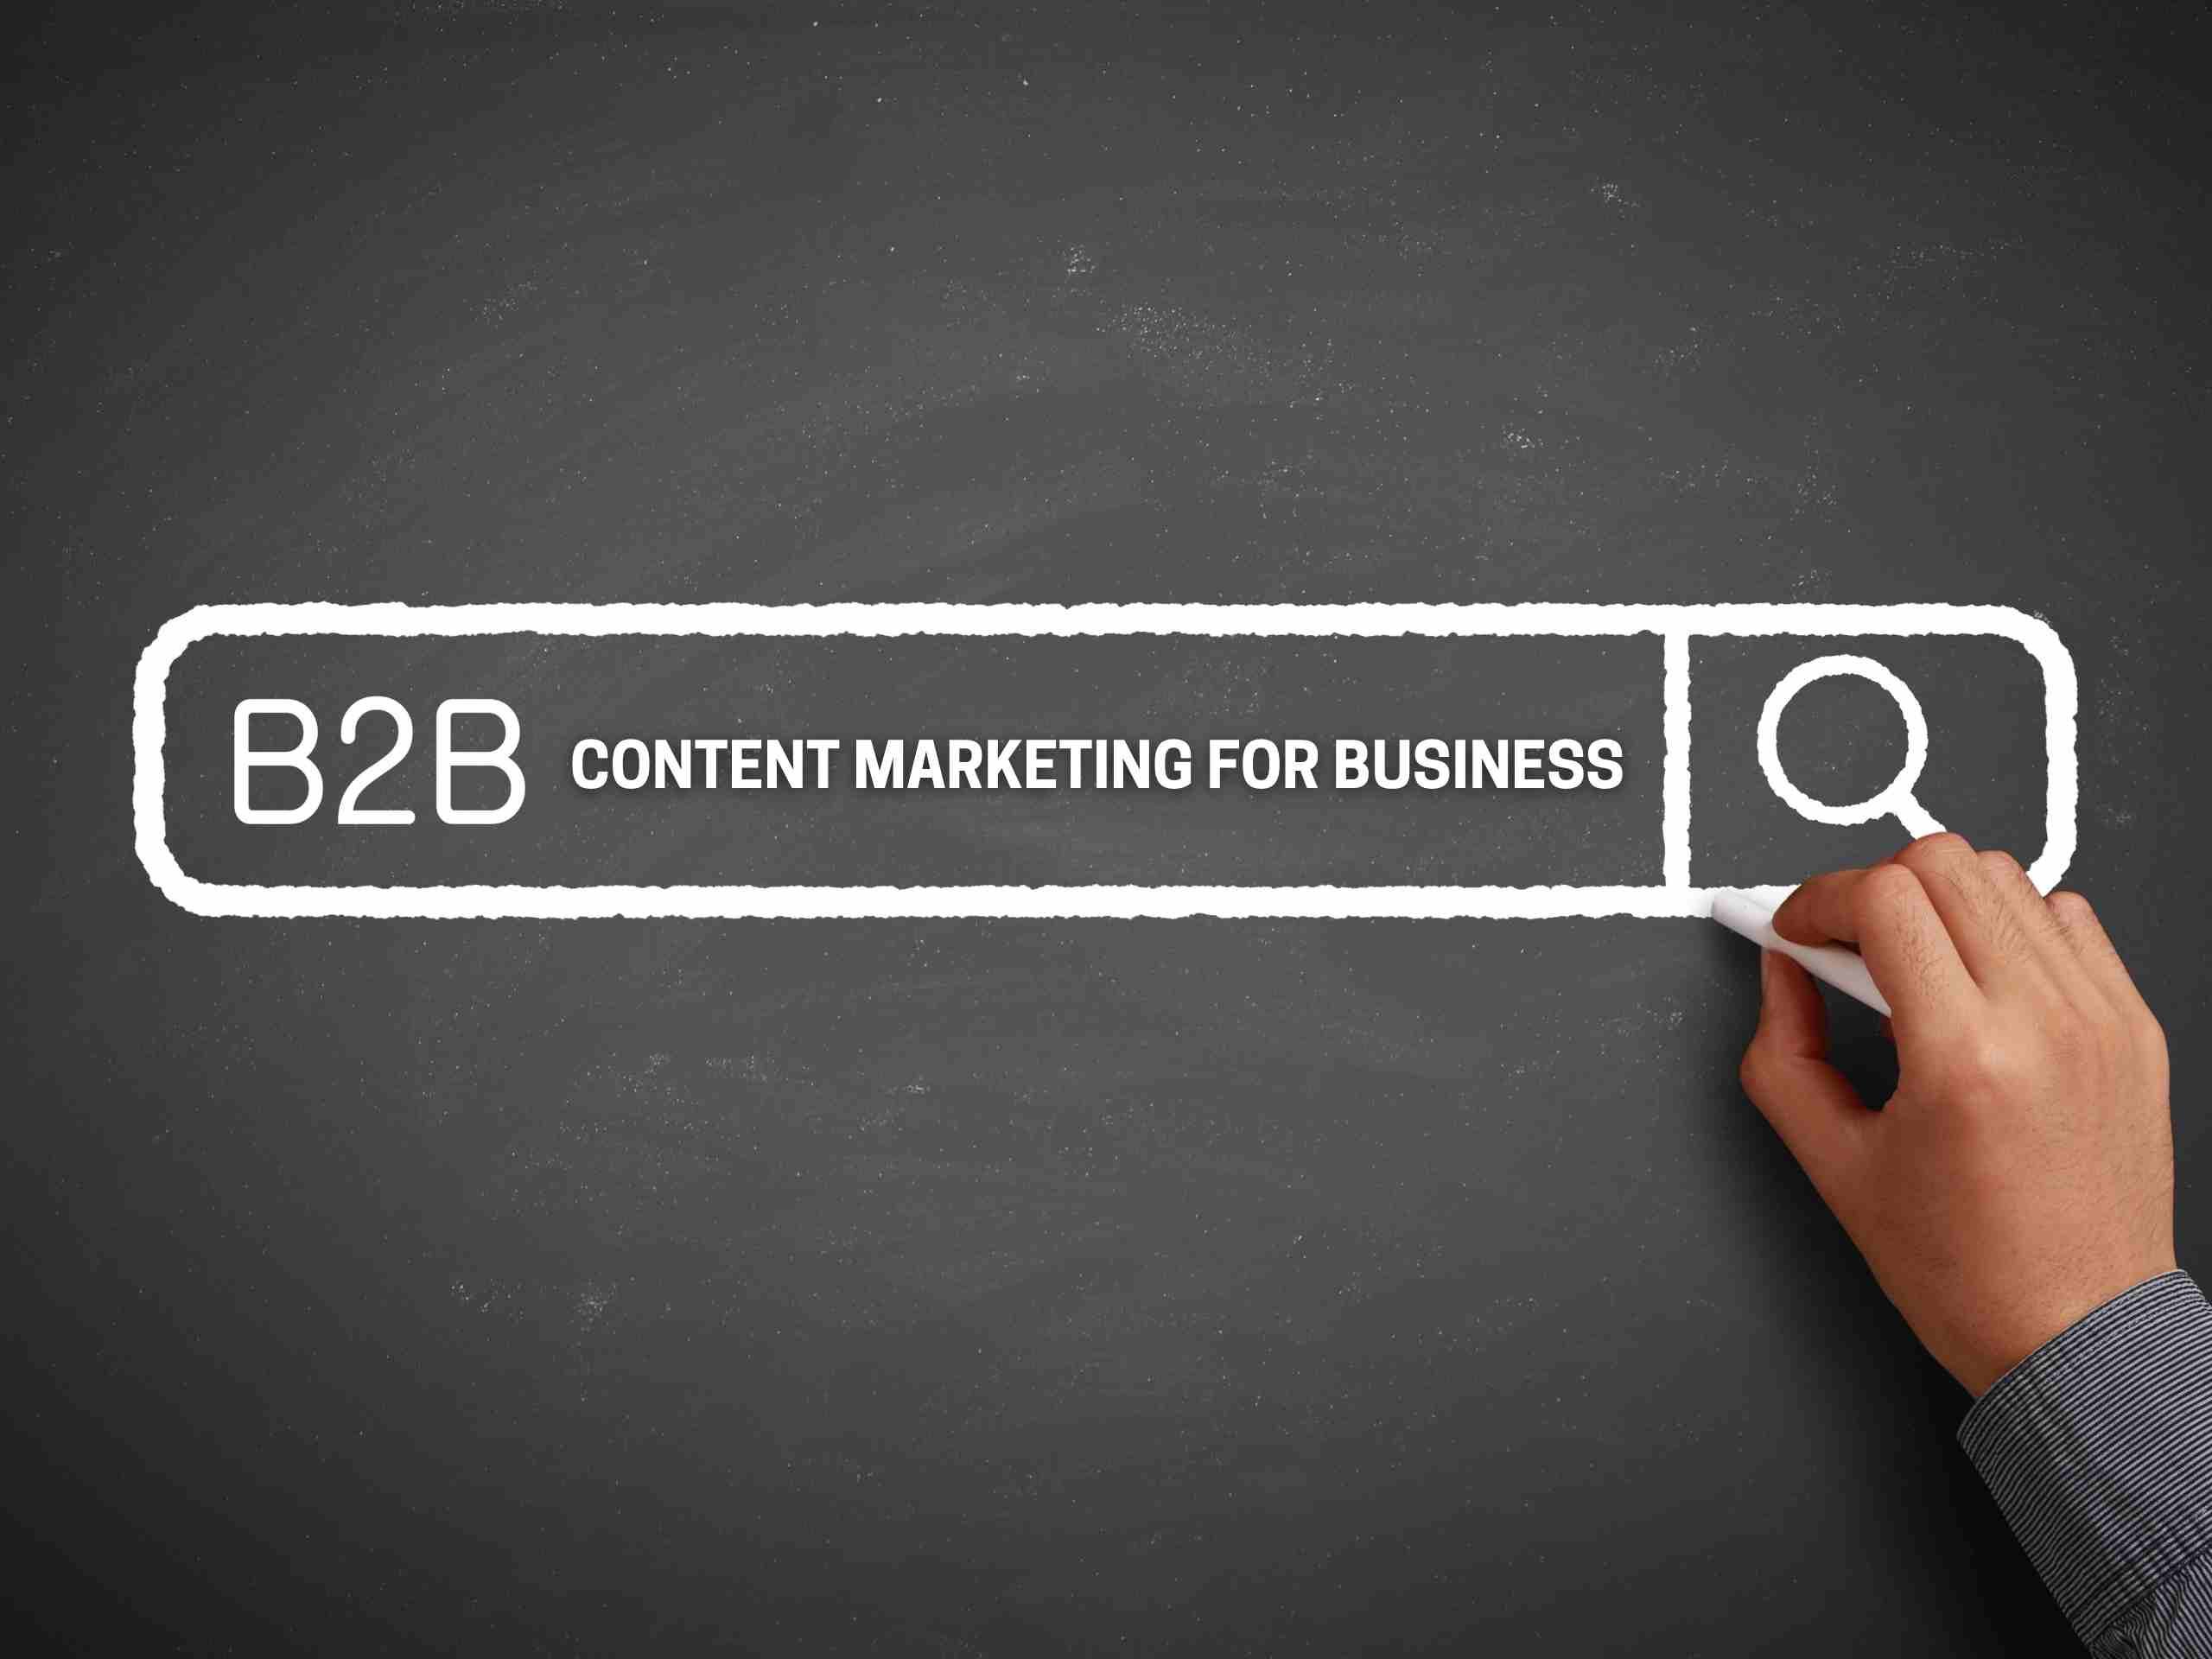 How to make B2B content marketing work for your business